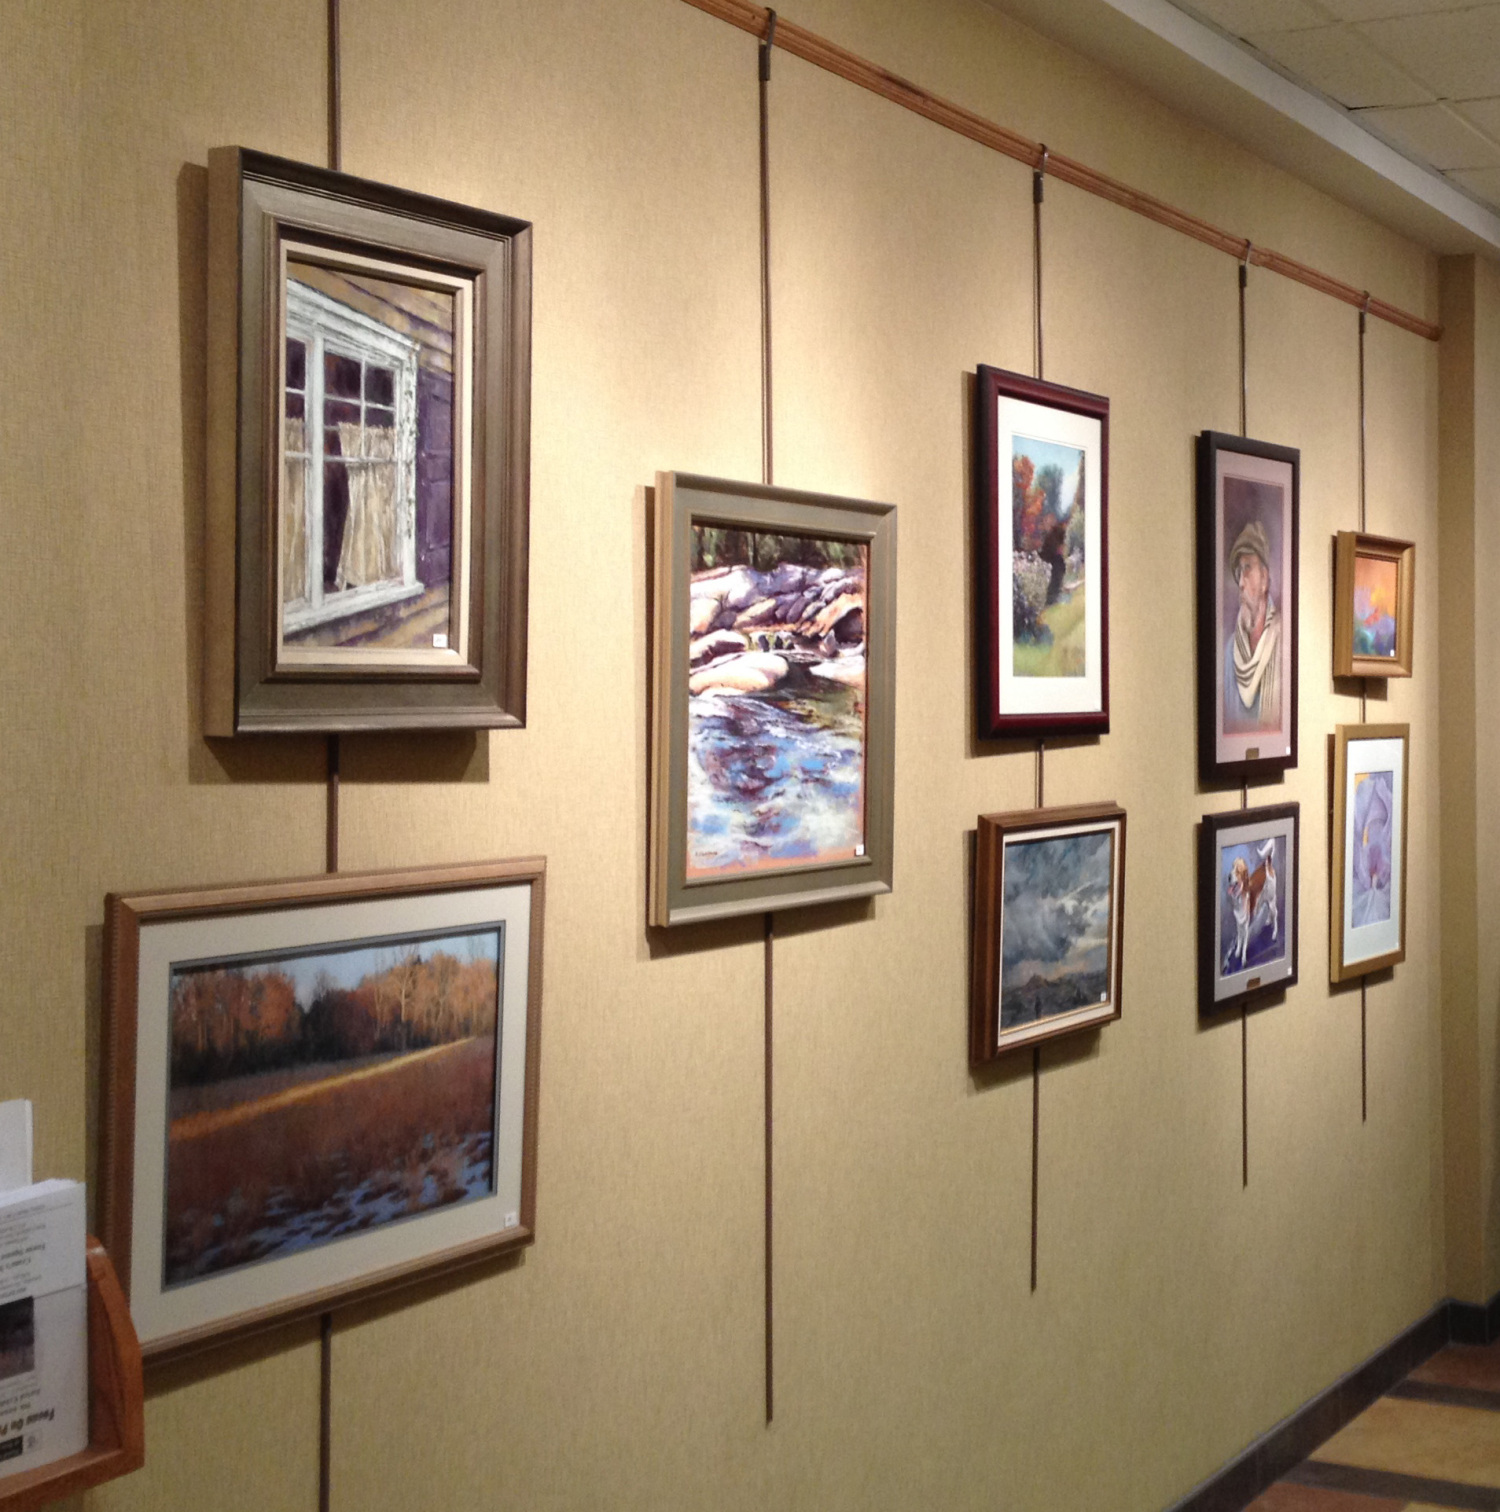 PSNJ 2014 Juried Exhibition at Cranes Mills